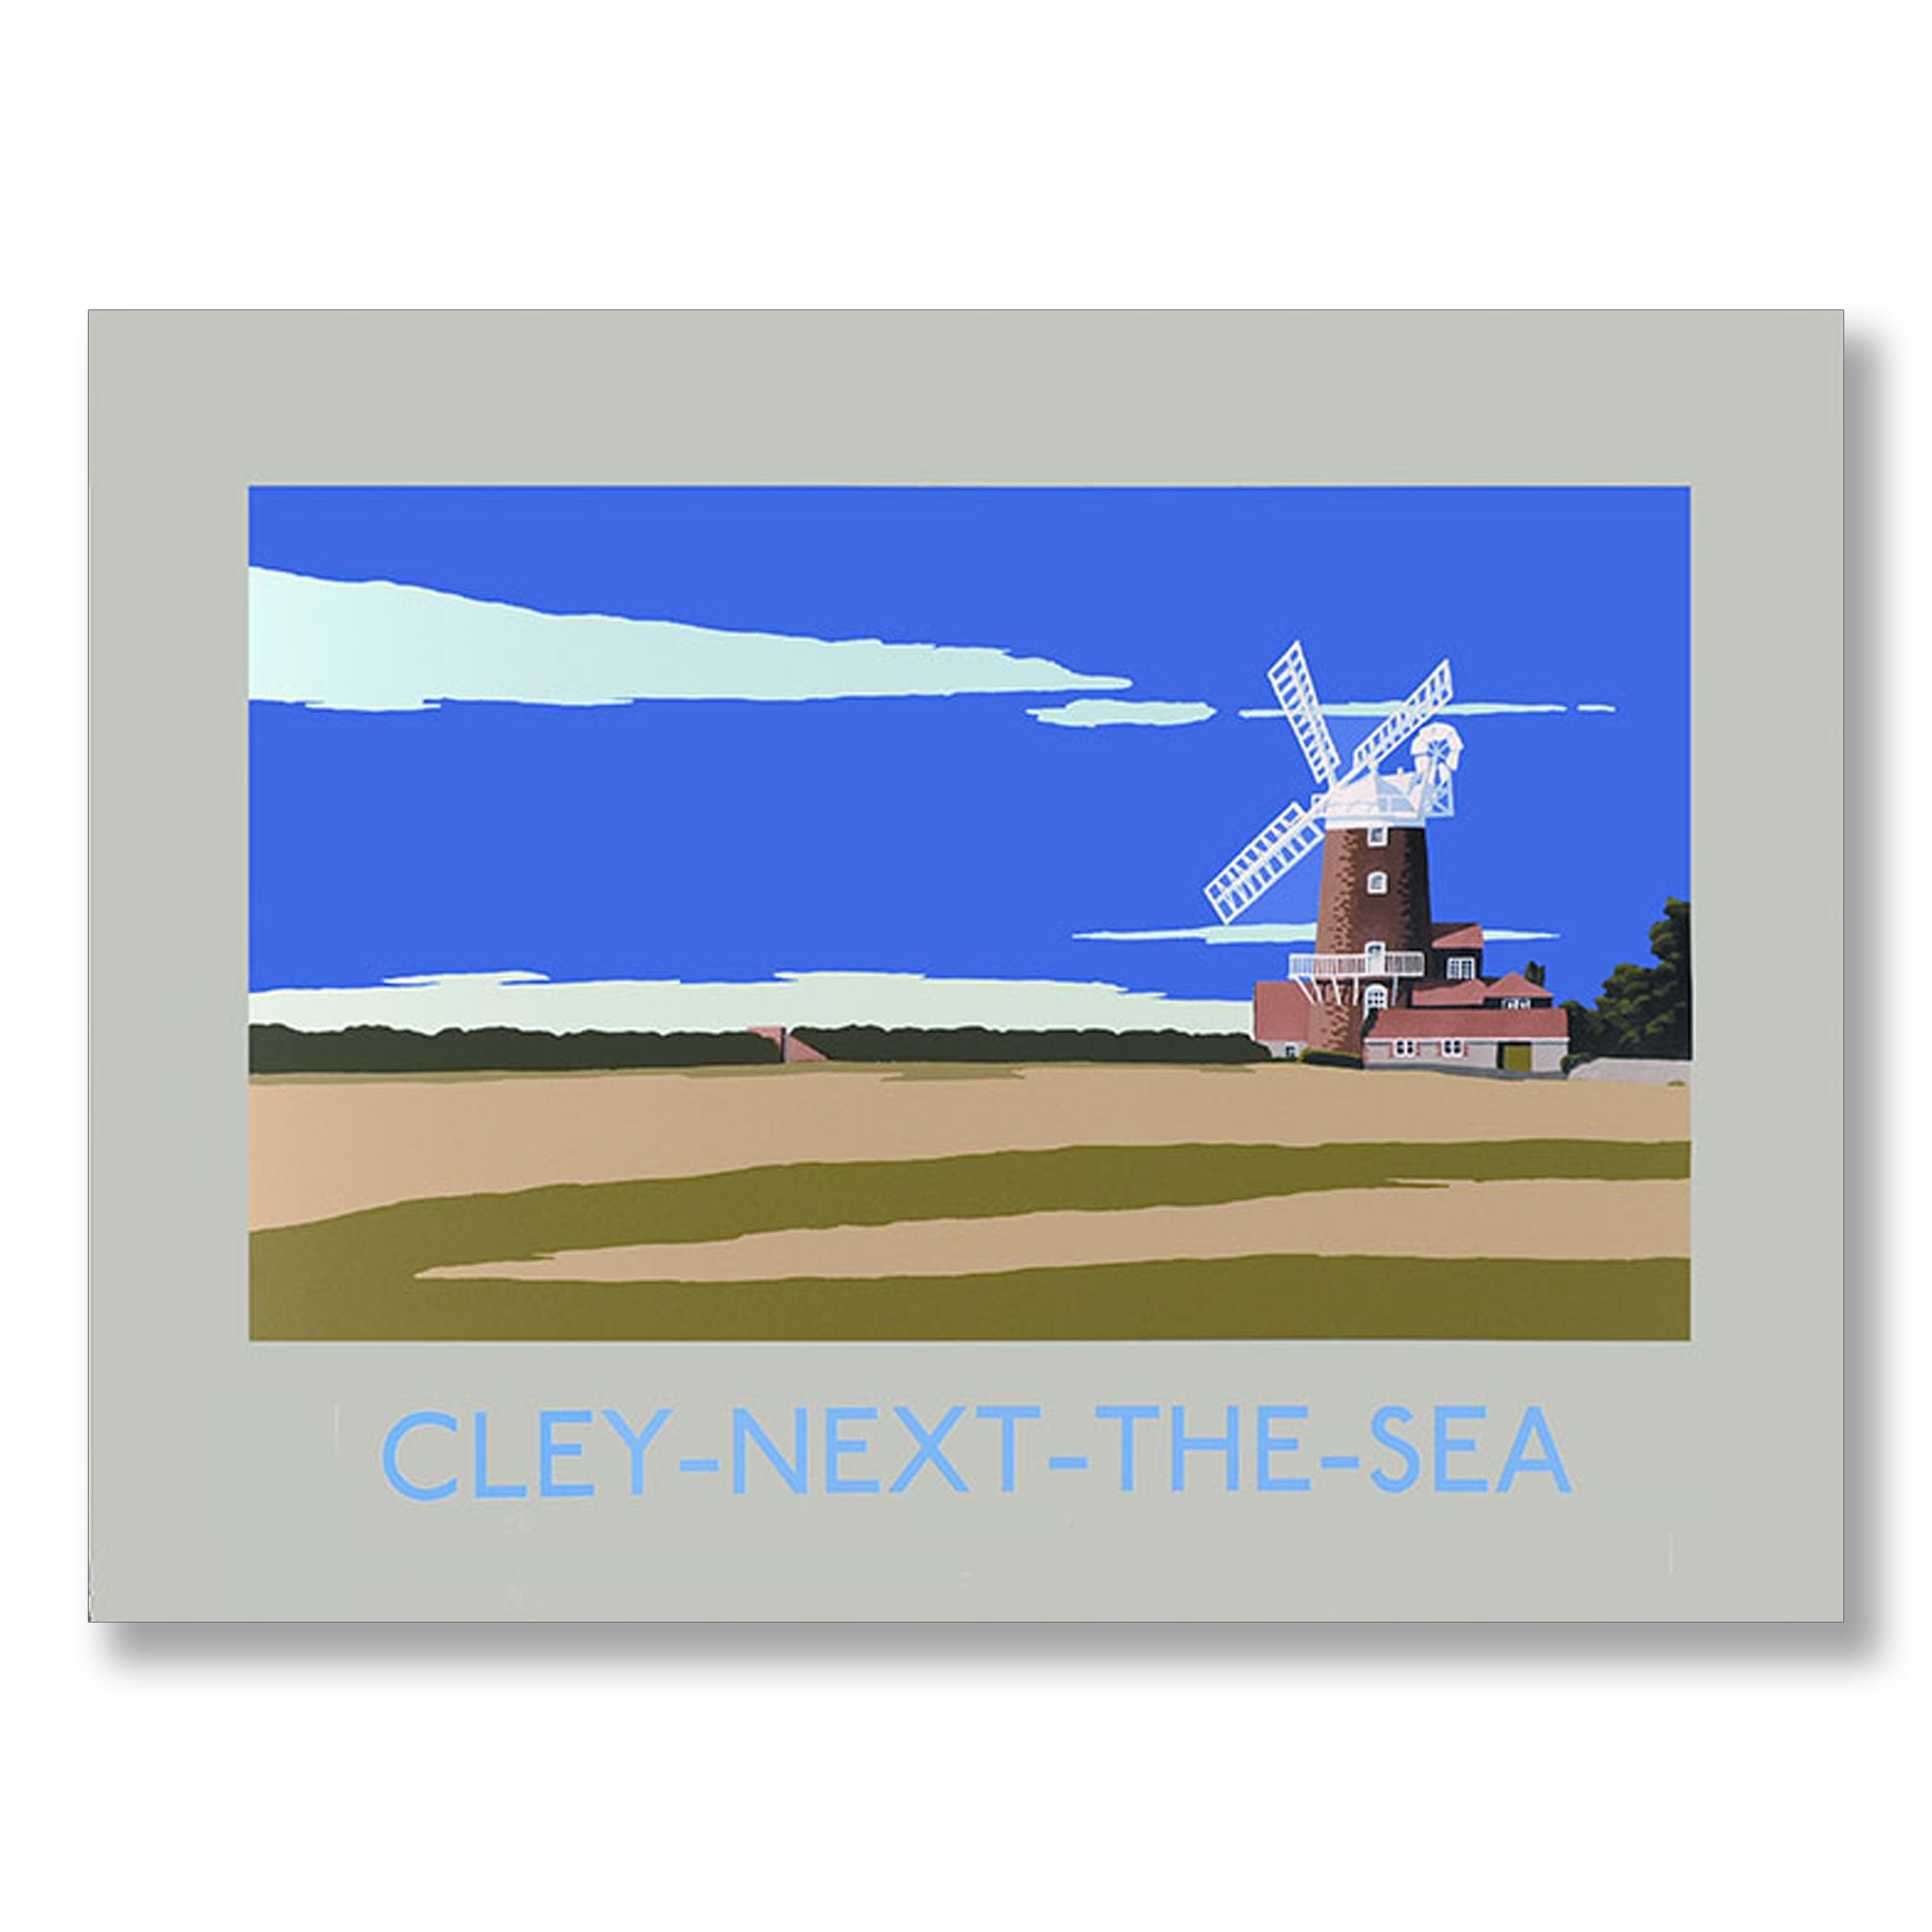 Cley-Next-The-Sea by David Kirk